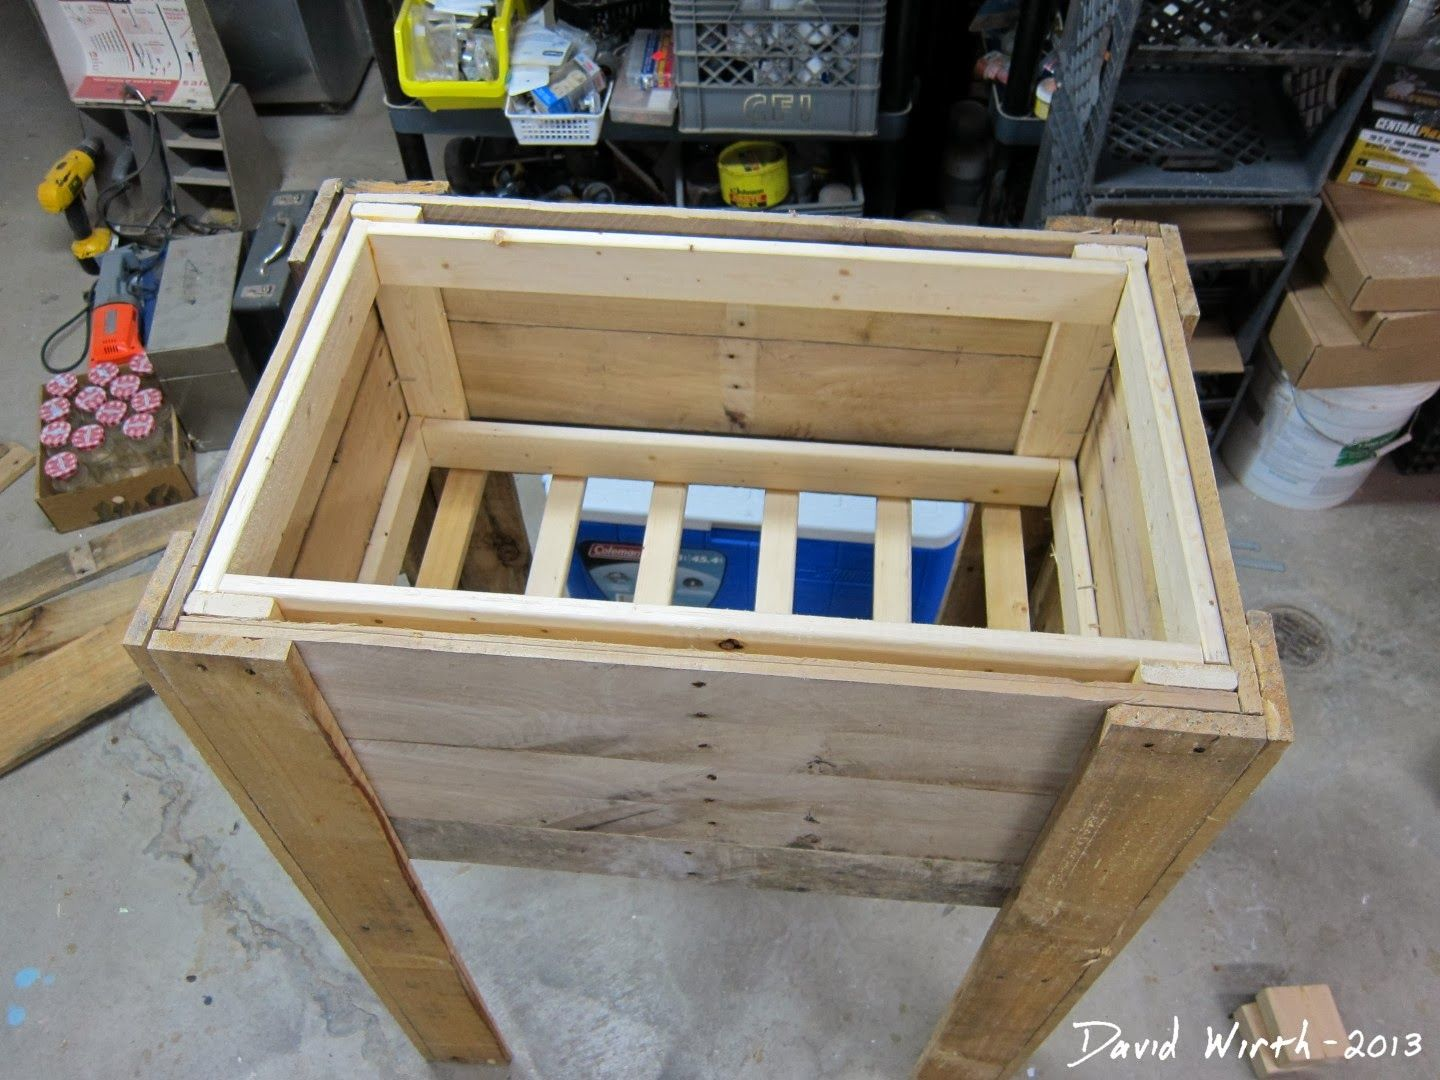 Wooden transport pallets have become increasingly popular for diy - And For Some Inspiration You Can Have A Look At These Diy 12 Pallet Cooler Collectibles To Build A Customized And Personal Cooler For Yourself